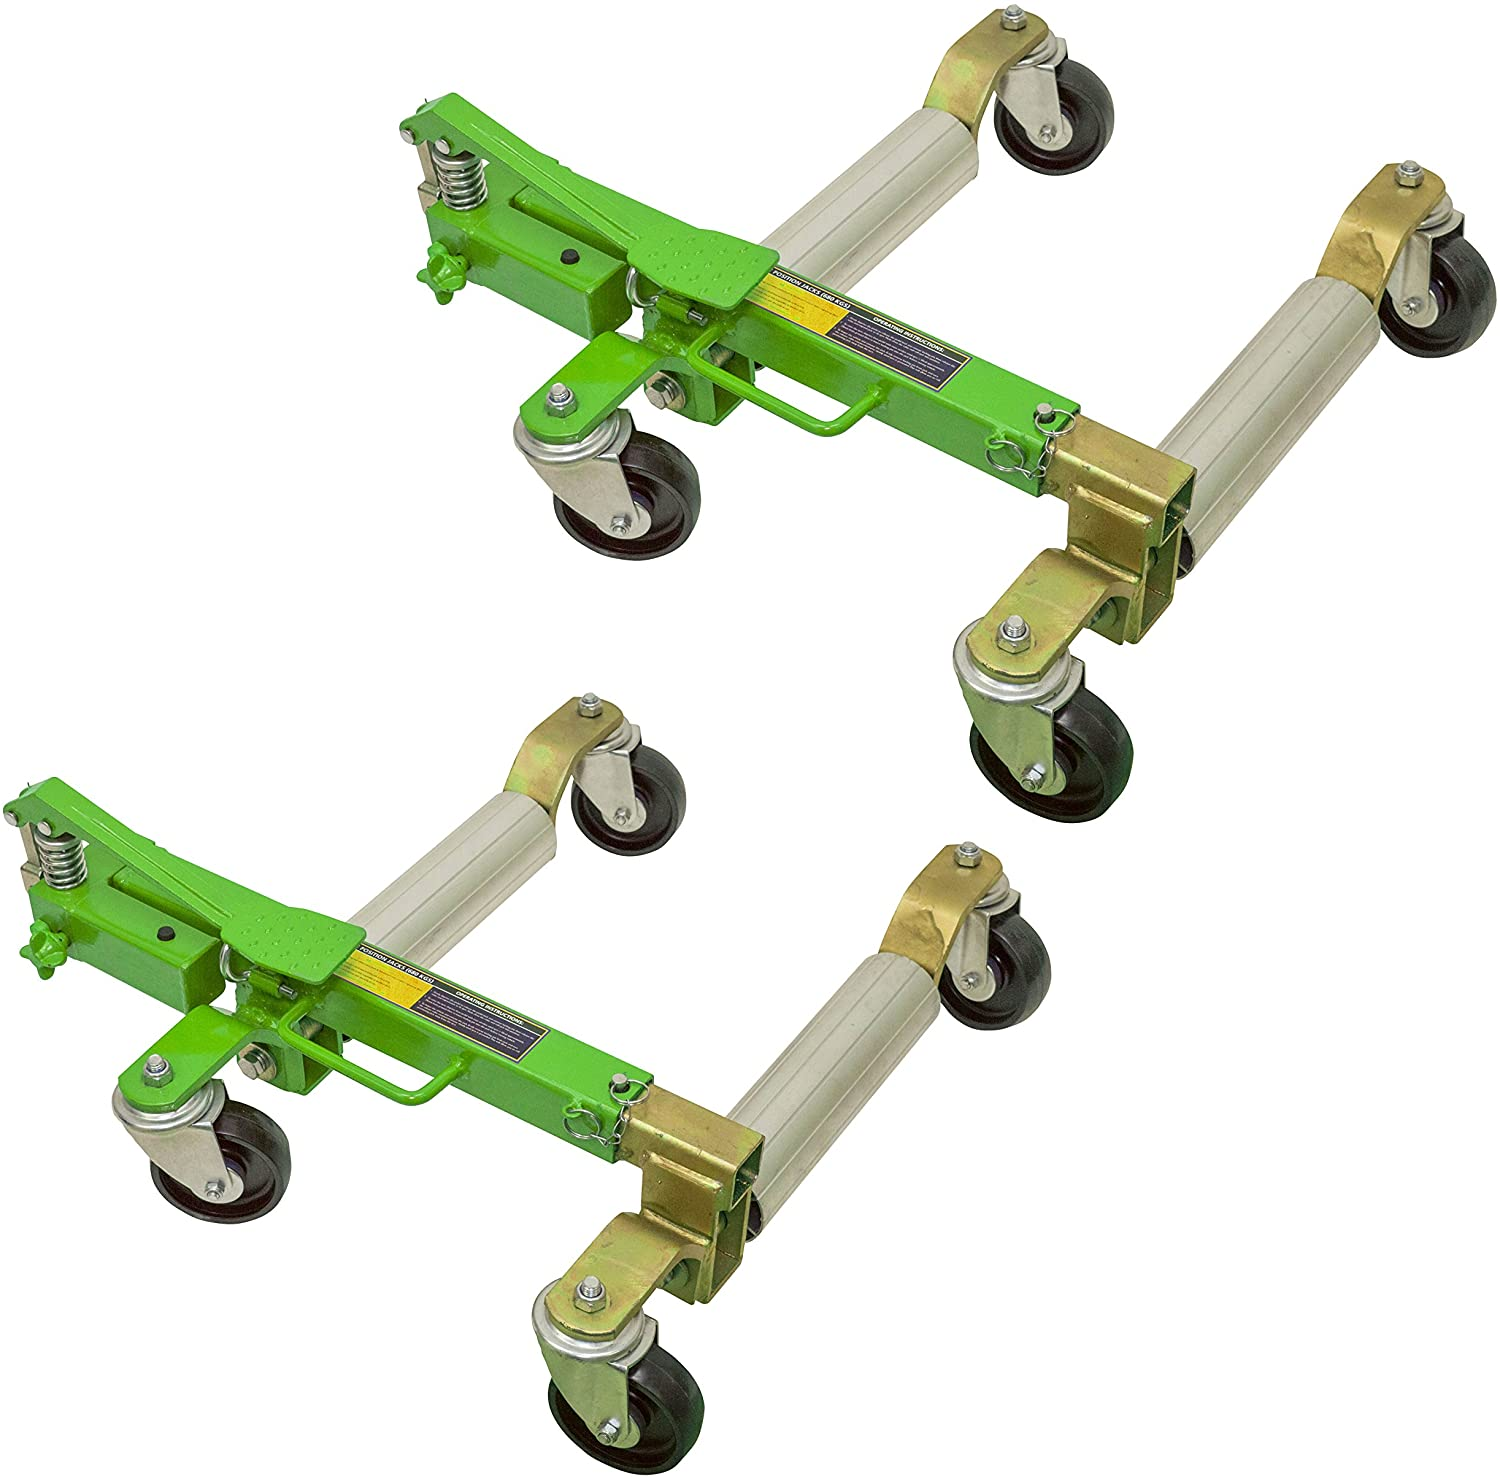 OEM TOOLS 24855TWO Vehicle Position Jack, 2 Pack (1500 lbs)